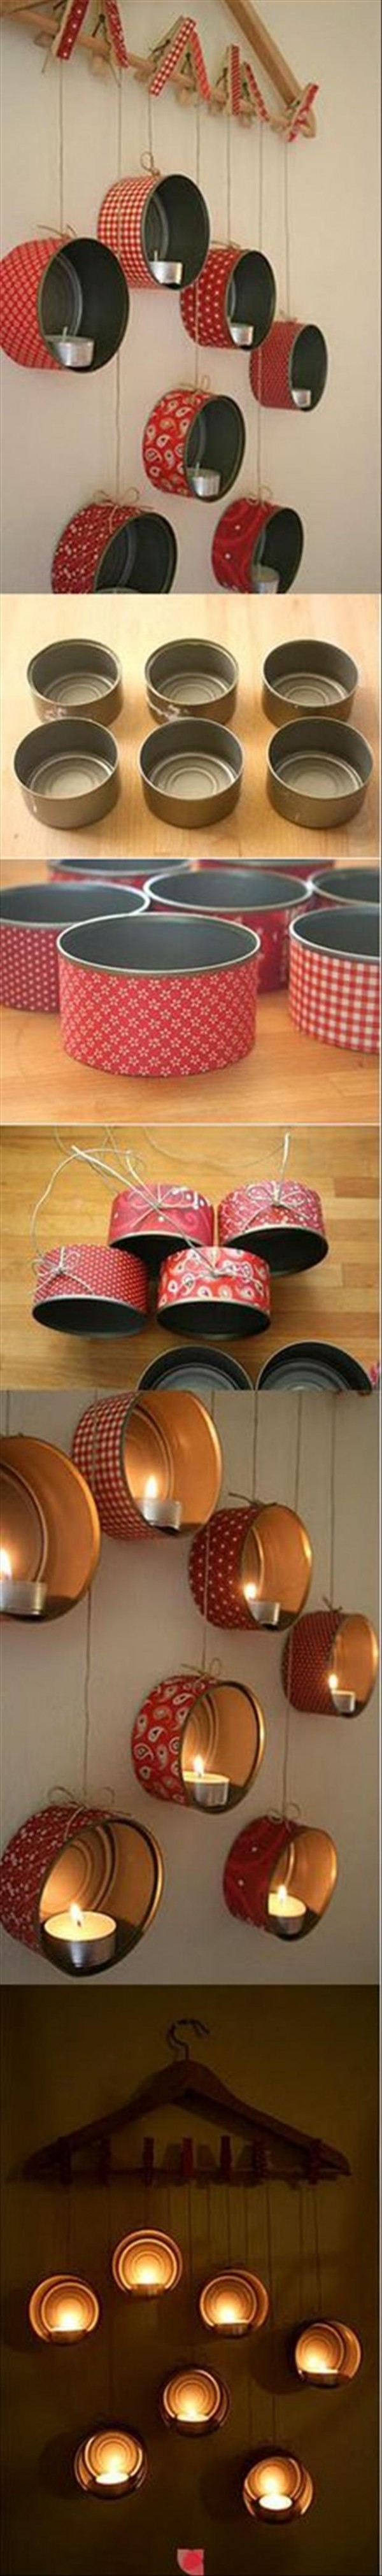 do-it-yourself-crafts-7